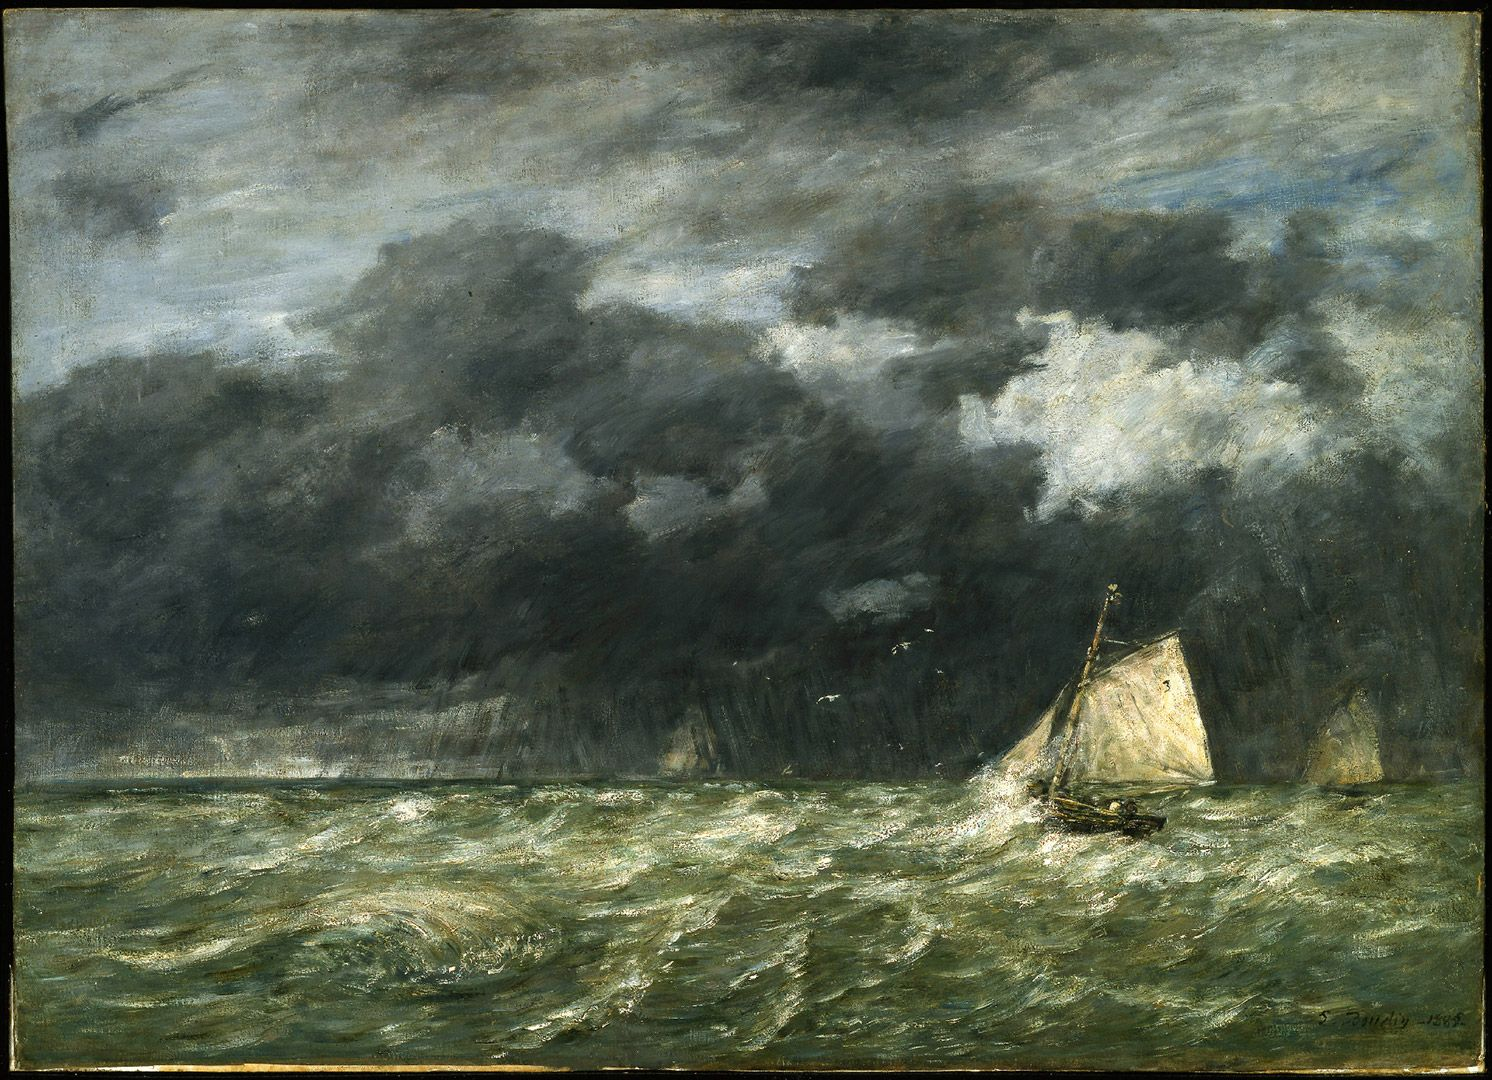 Eugène Boudin, A Squall, 1885, oil on canvas, 65.2 x 90.3 cm. Dr. Francis J. Shepherd Bequest.